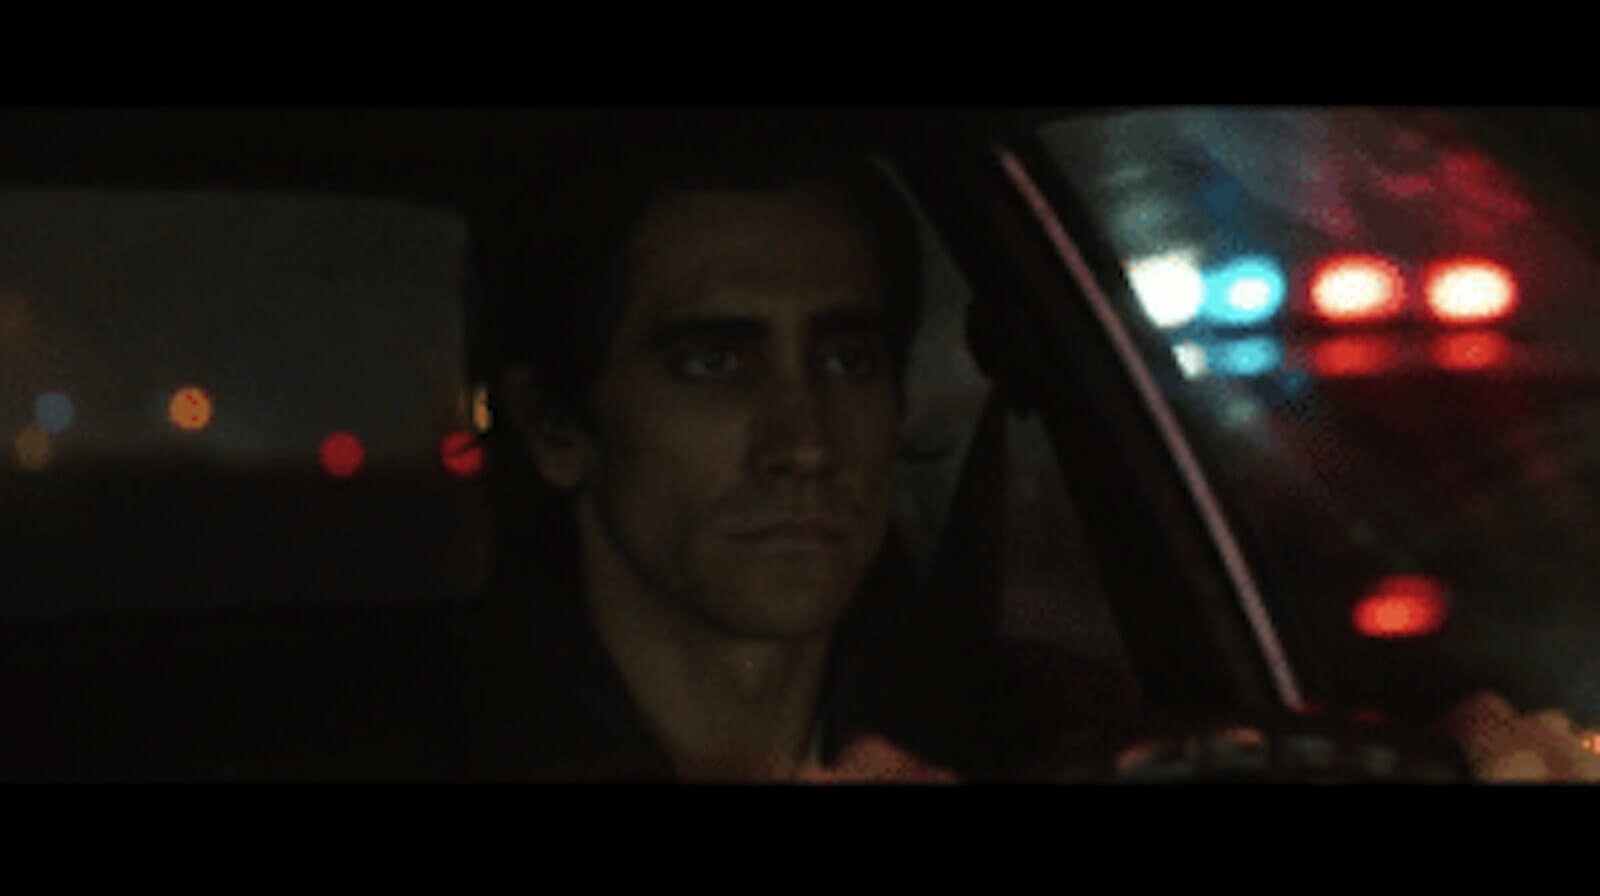 Rules of Shot Composition - Lou - Nightcrawler - StudioBinder